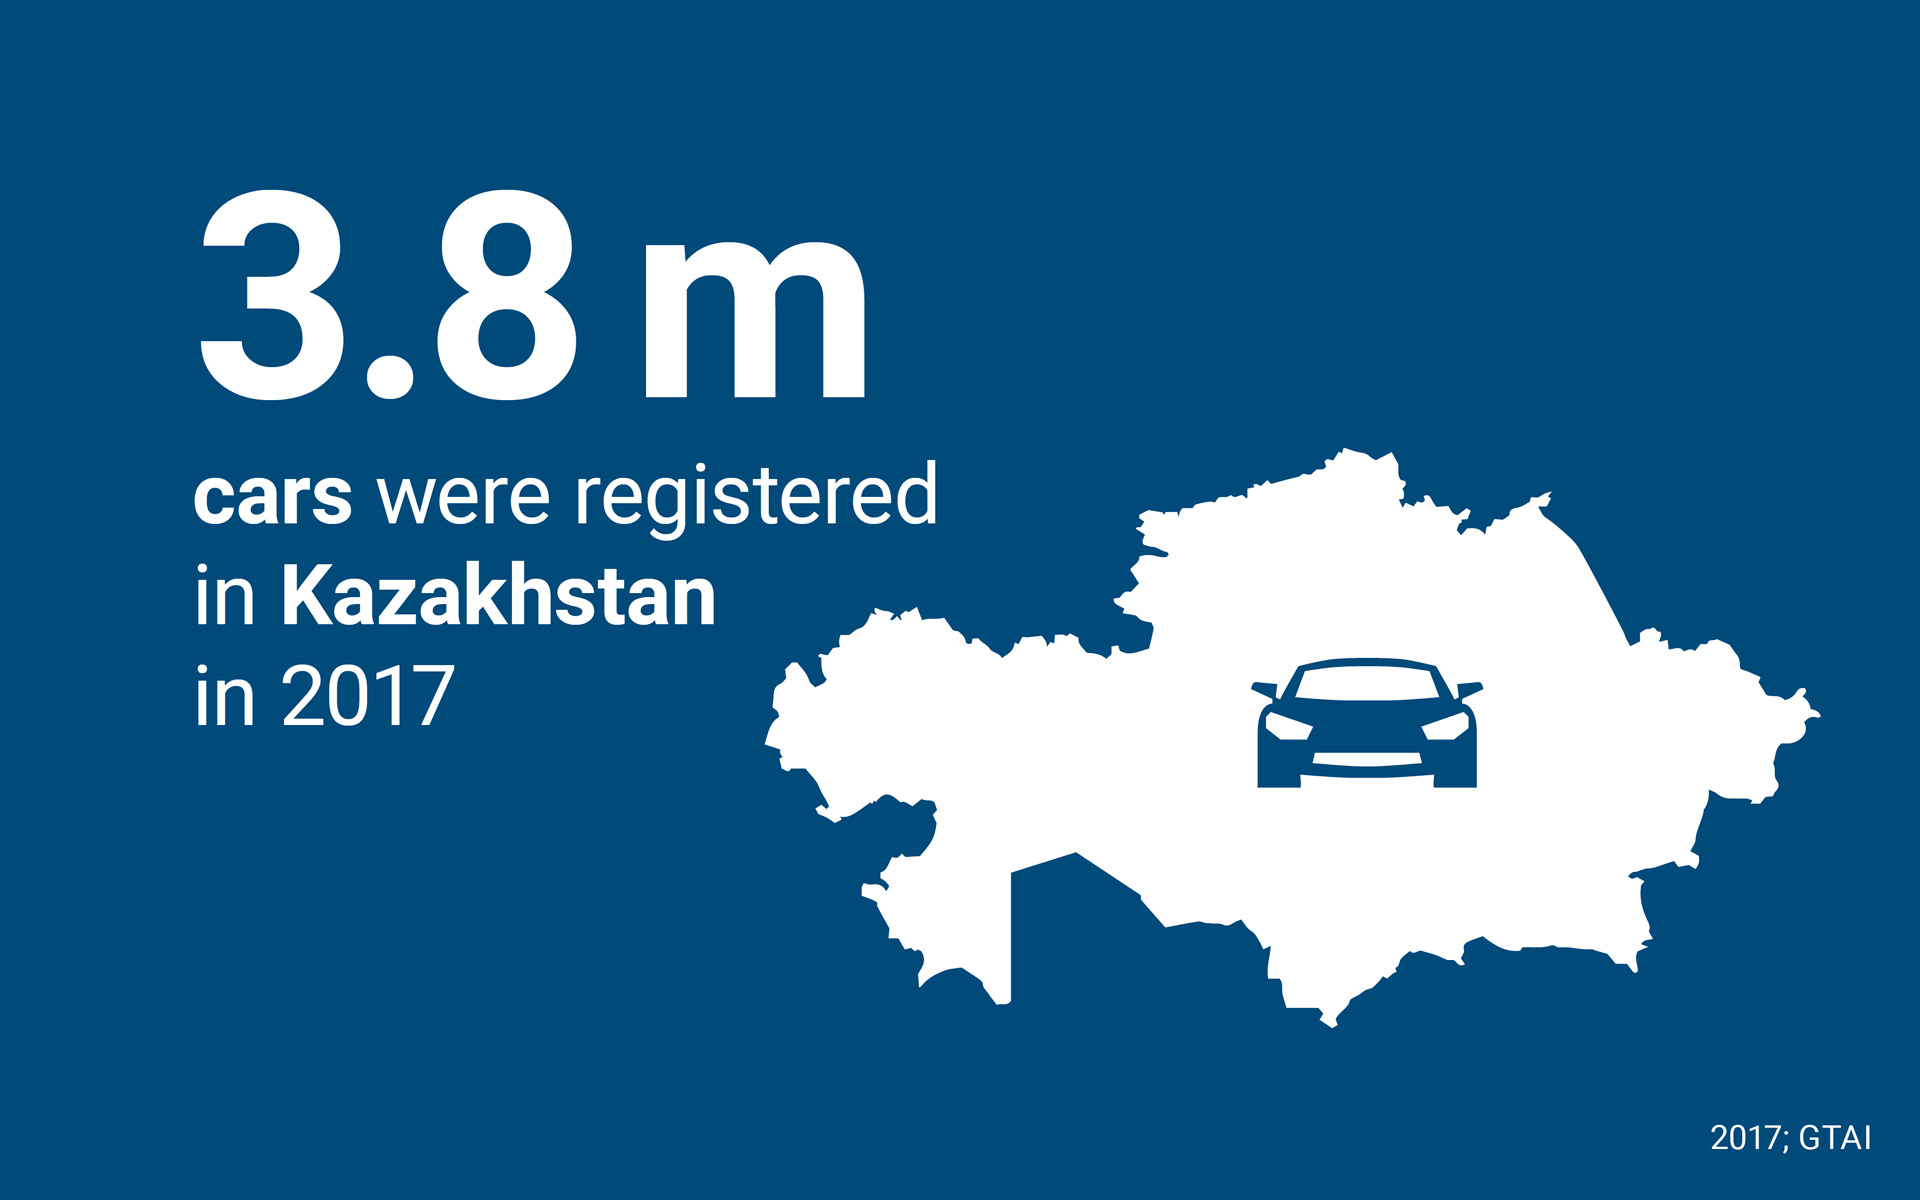 3.8 m cars were registered in Kazakhstan in 2017